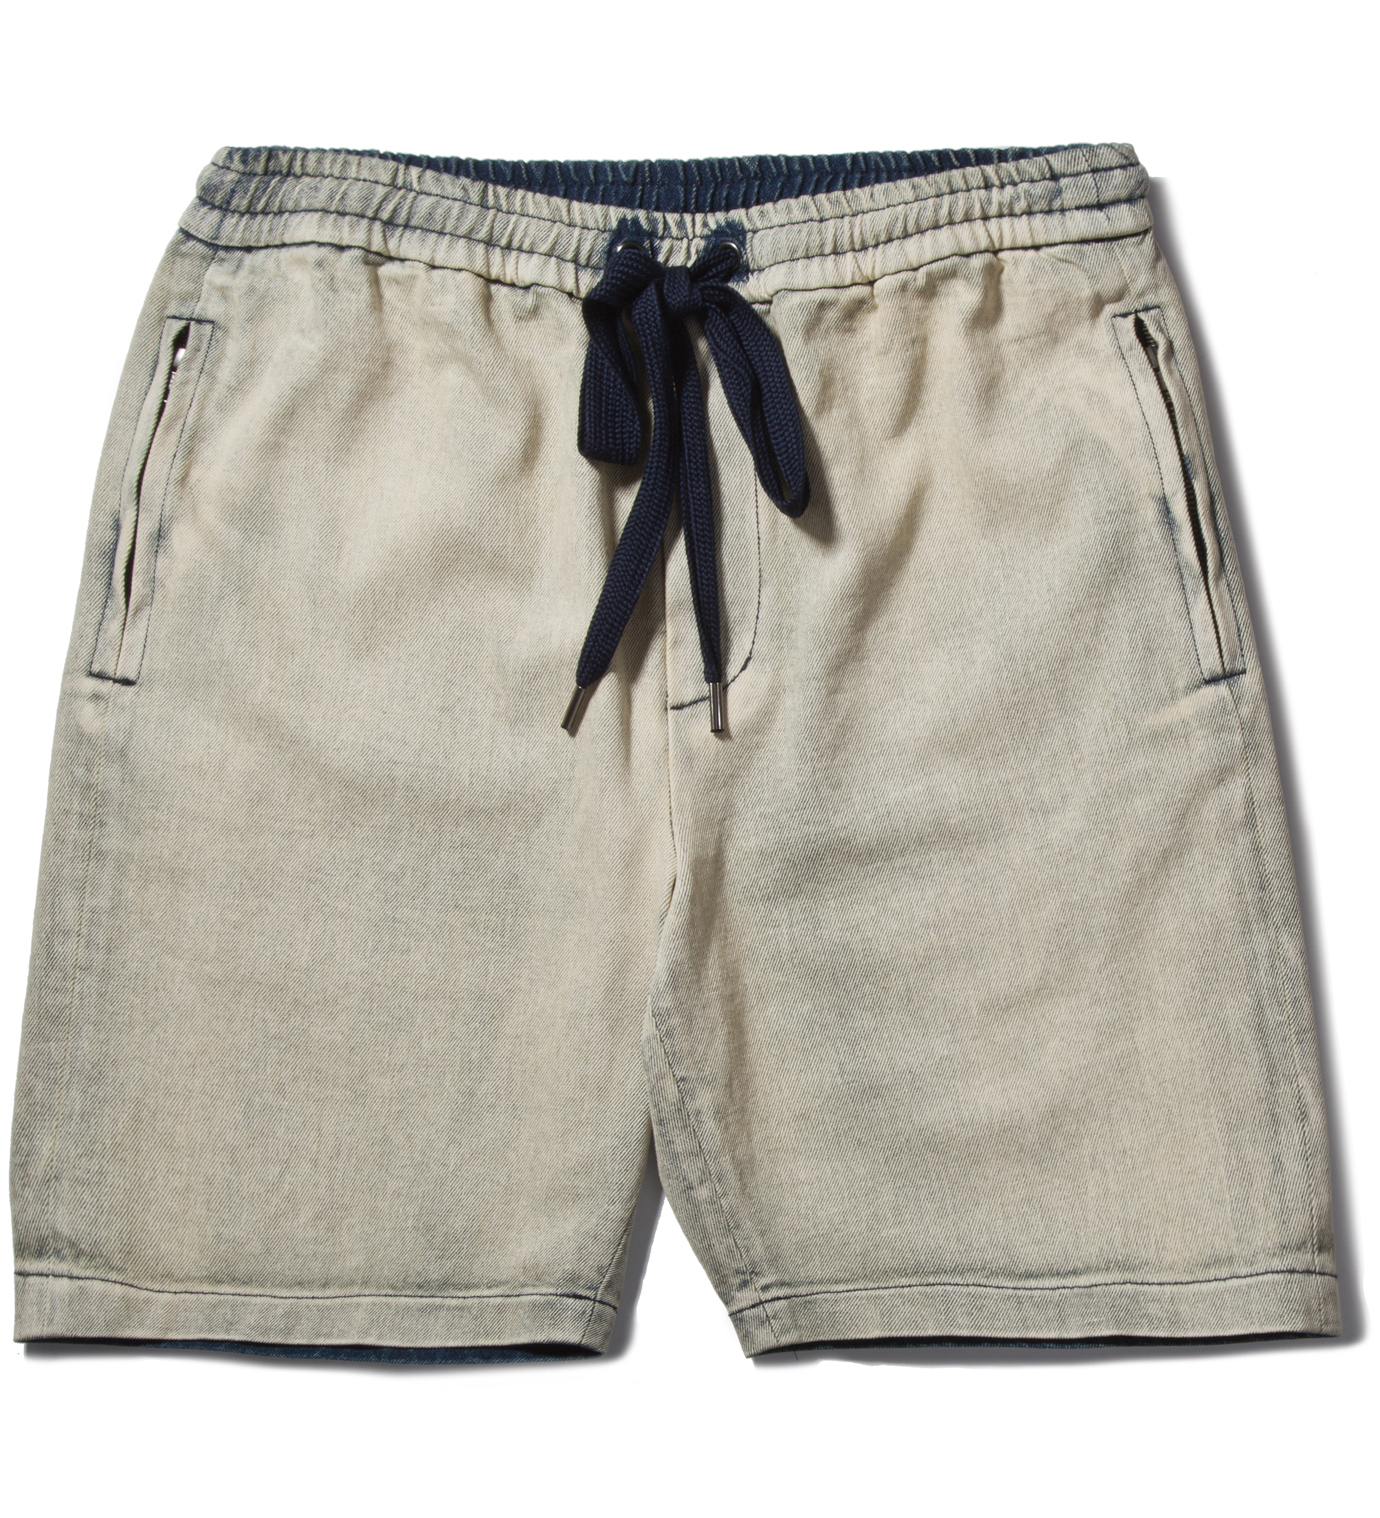 3.1 Phillip Lim Light Indigo Boxing Short with Side Zipper Pocket